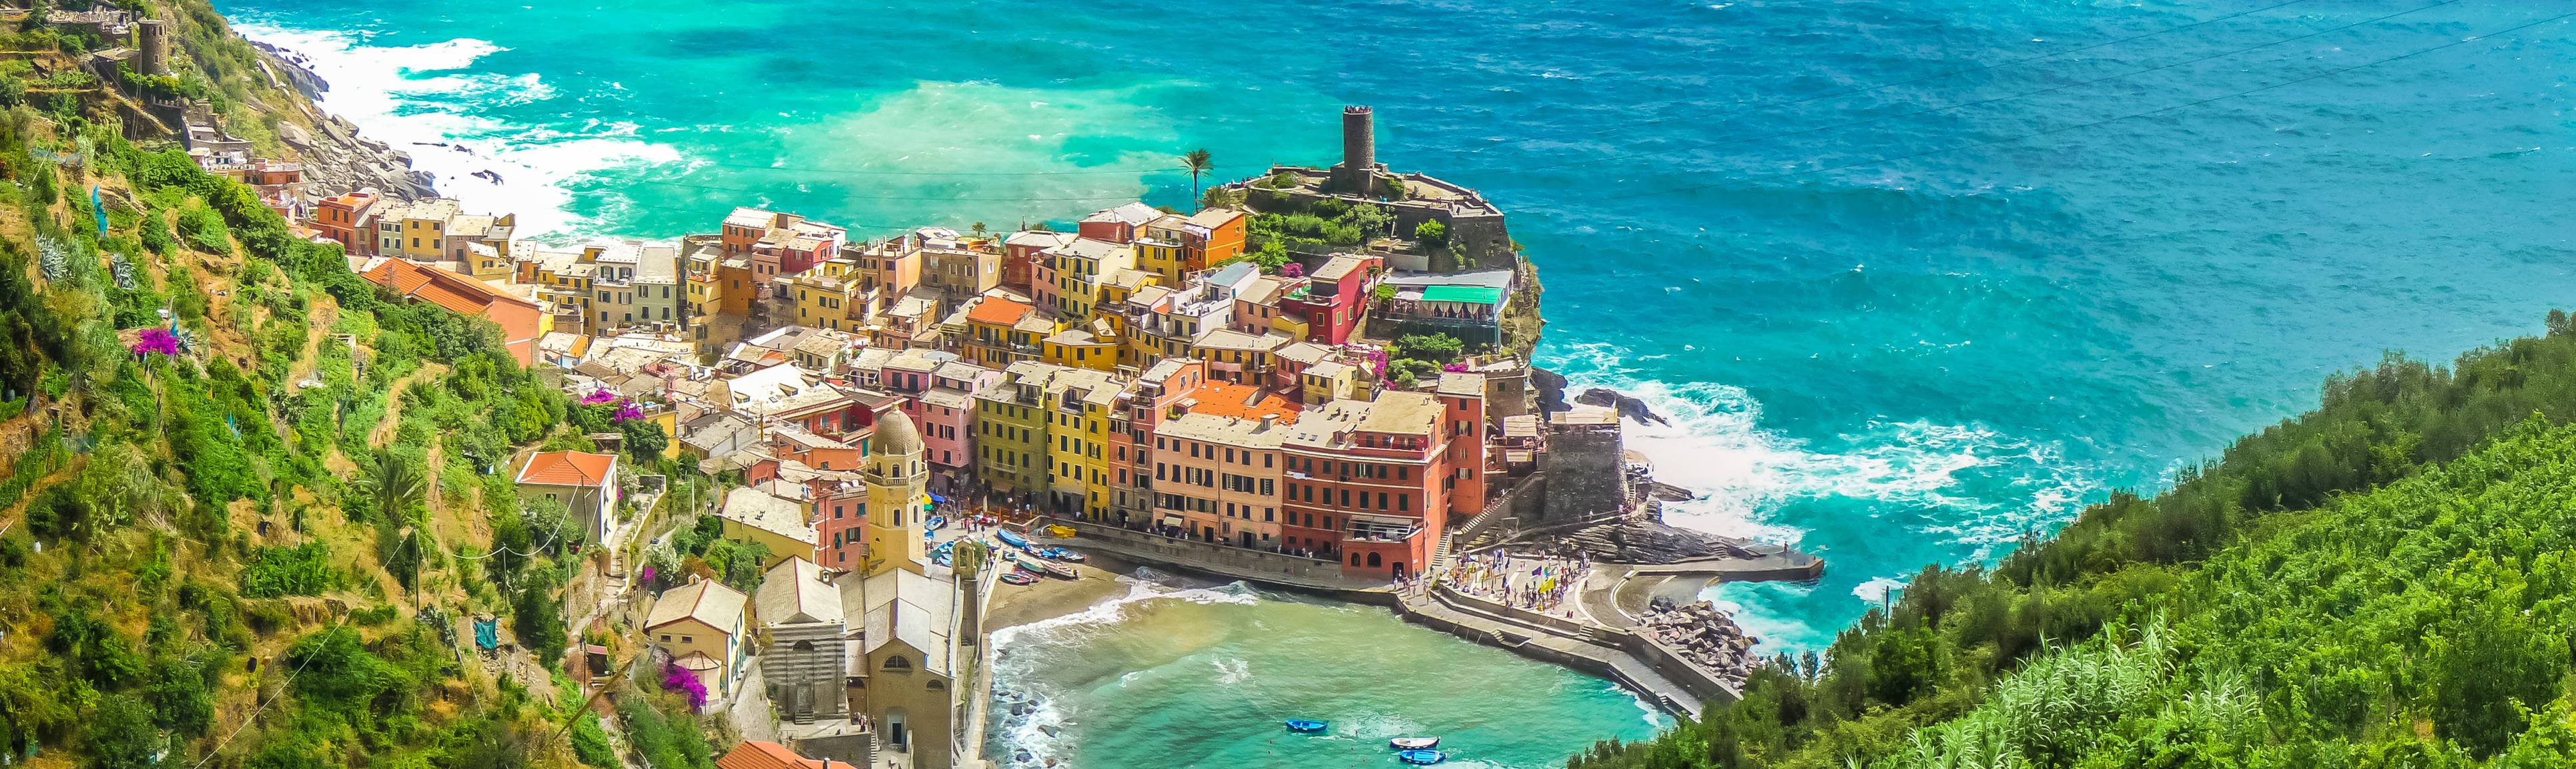 Bird's eye view of colorful Cinque Terre in Italy